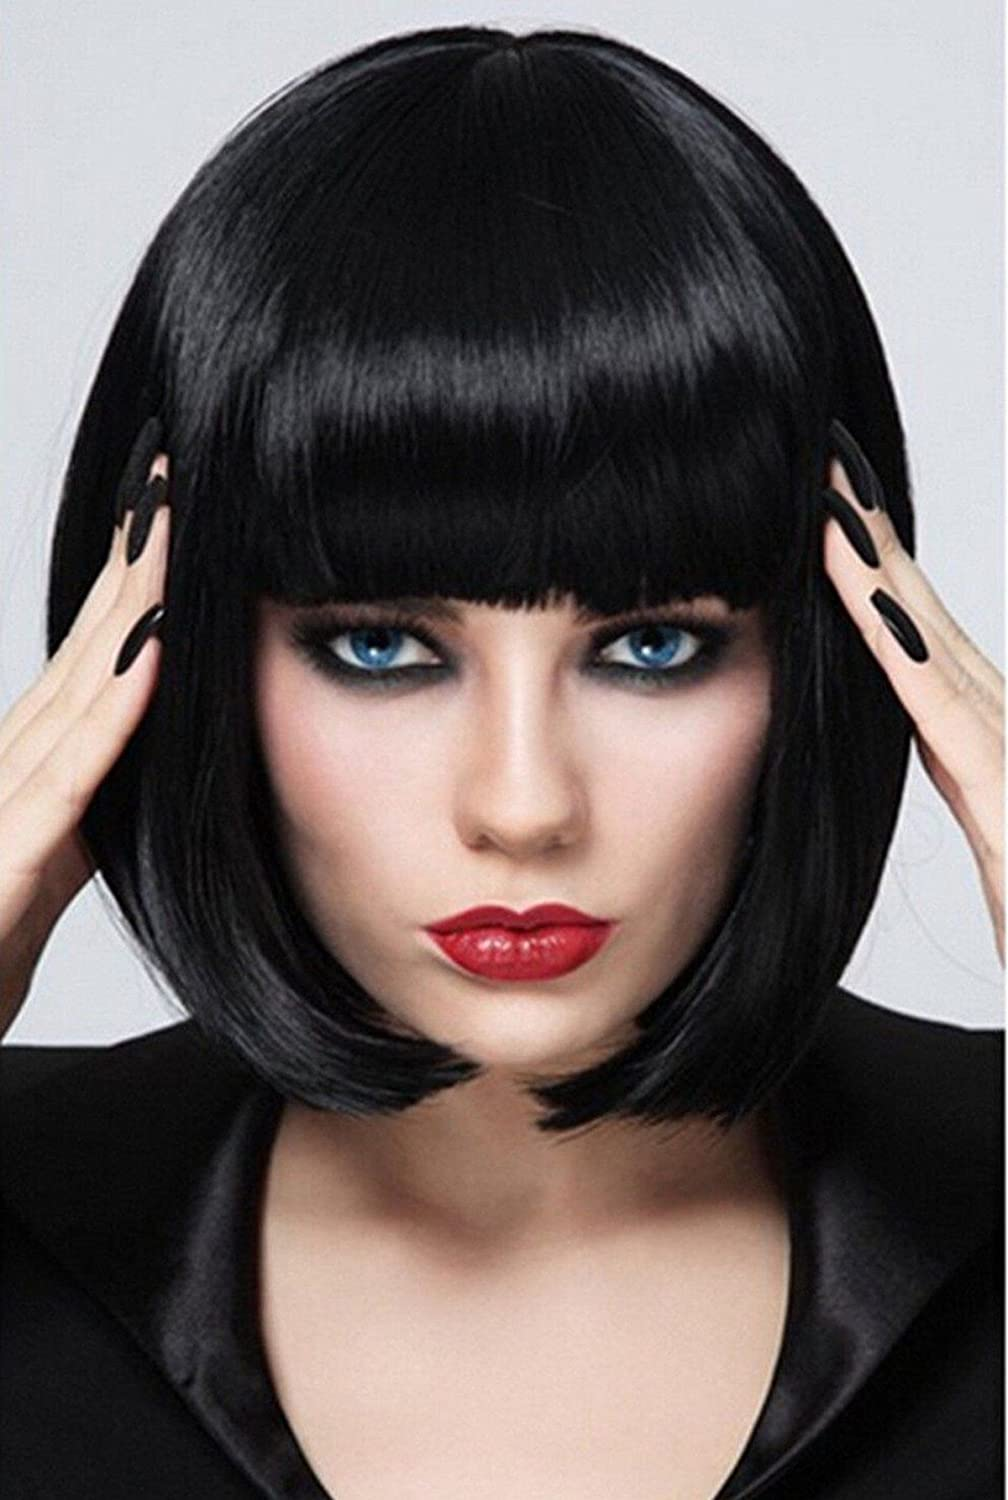 Short Bob Wigs Black Wig for Women with Bangs Straight Synthetic Wig Natural As Real Hair 12 BU027BK